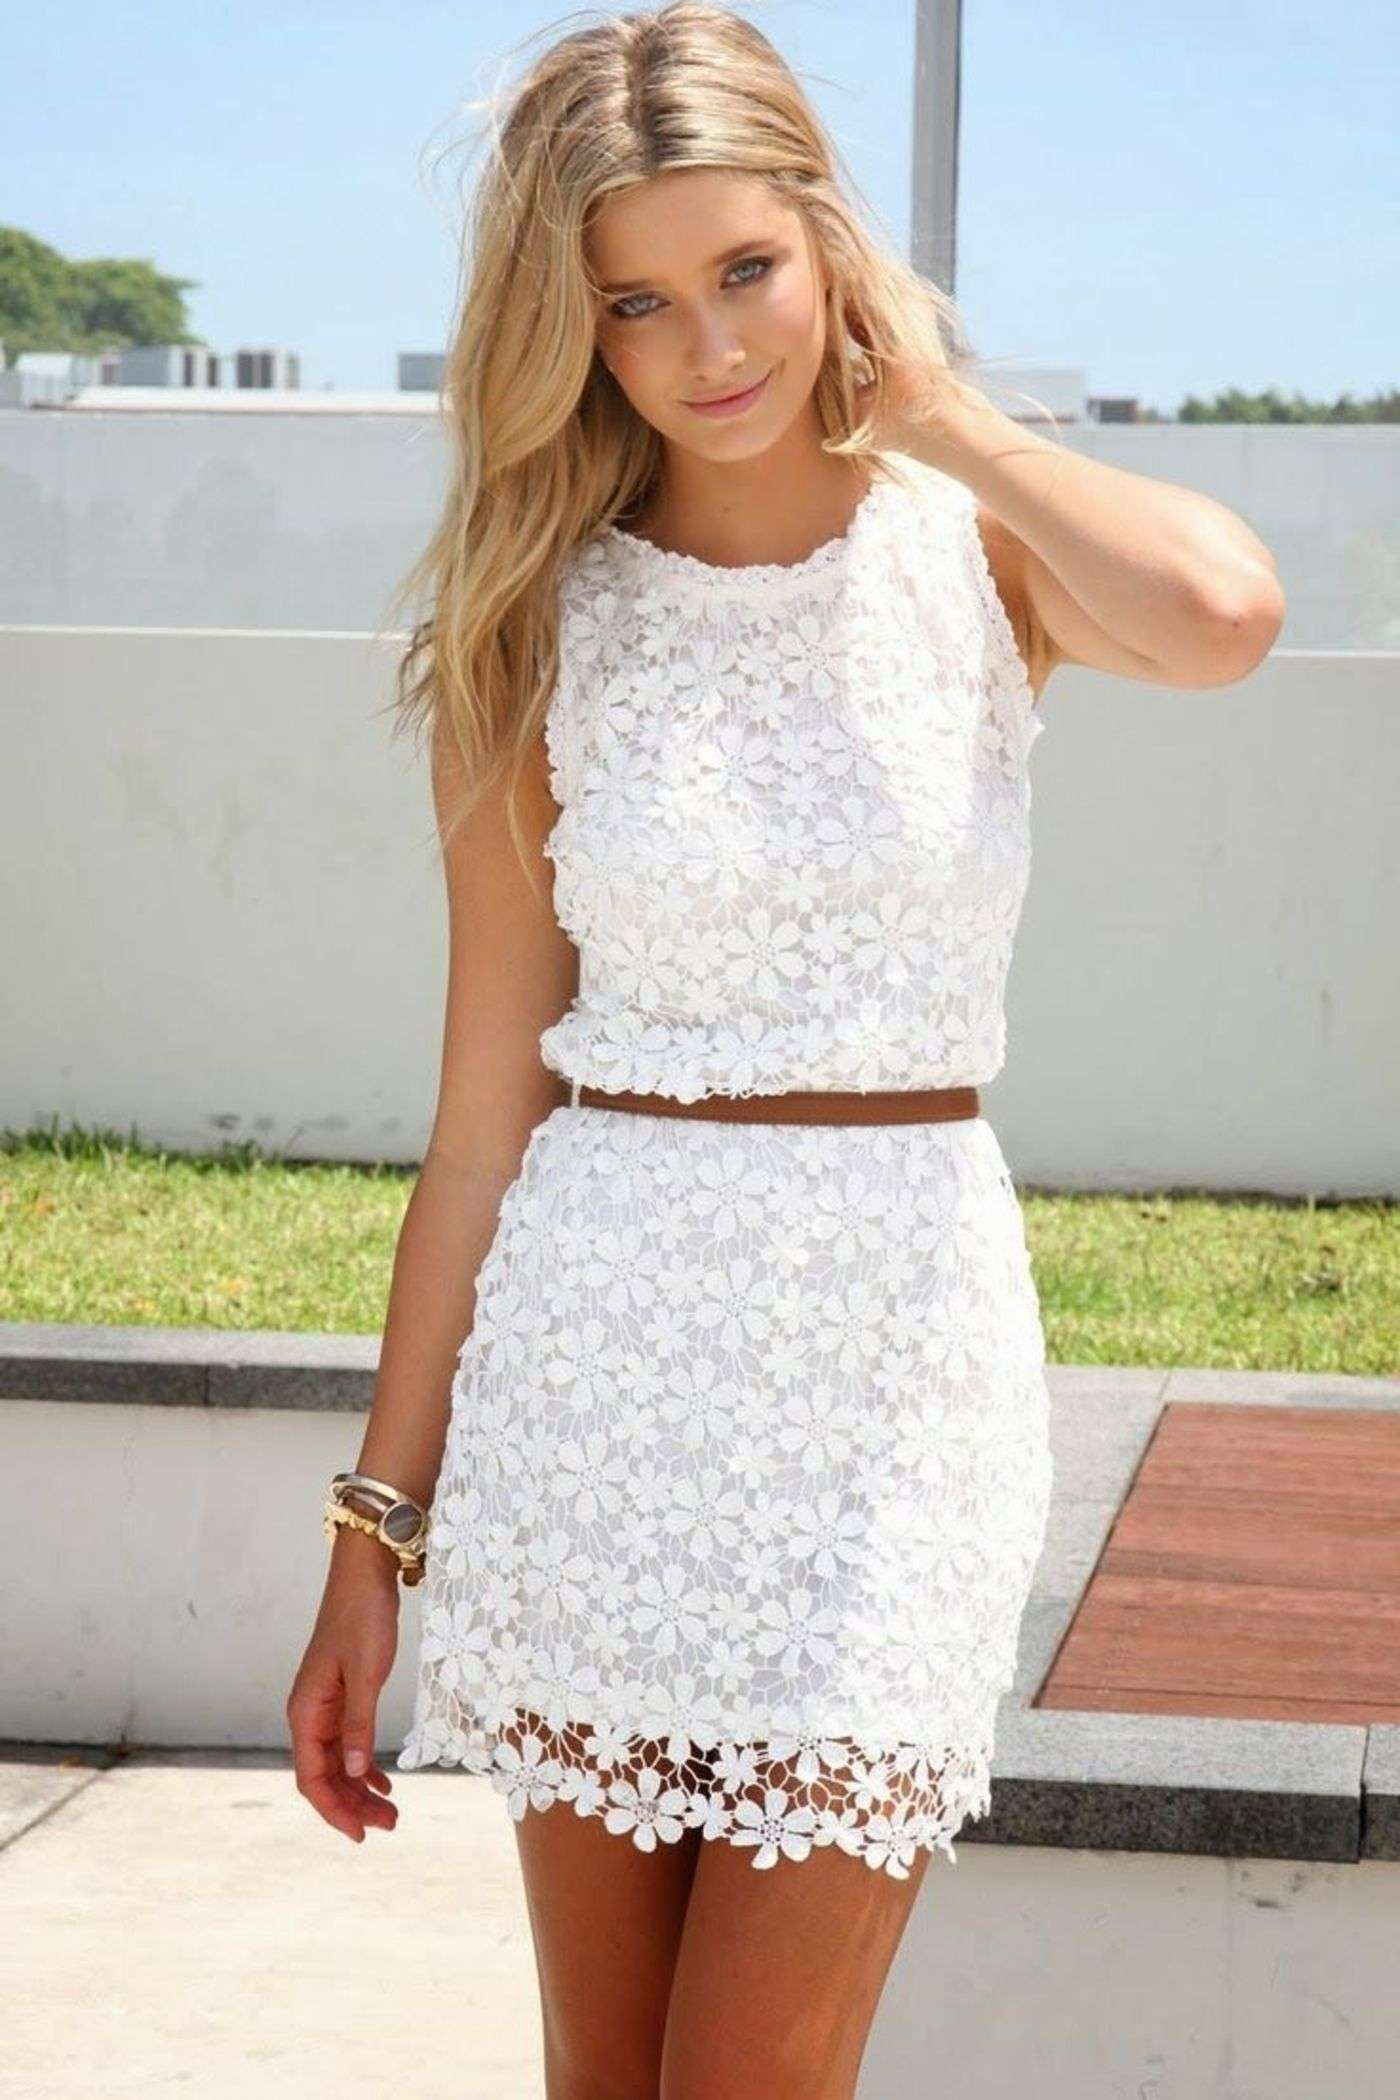 Trends Shaker | Trends Inspiration: White Lace